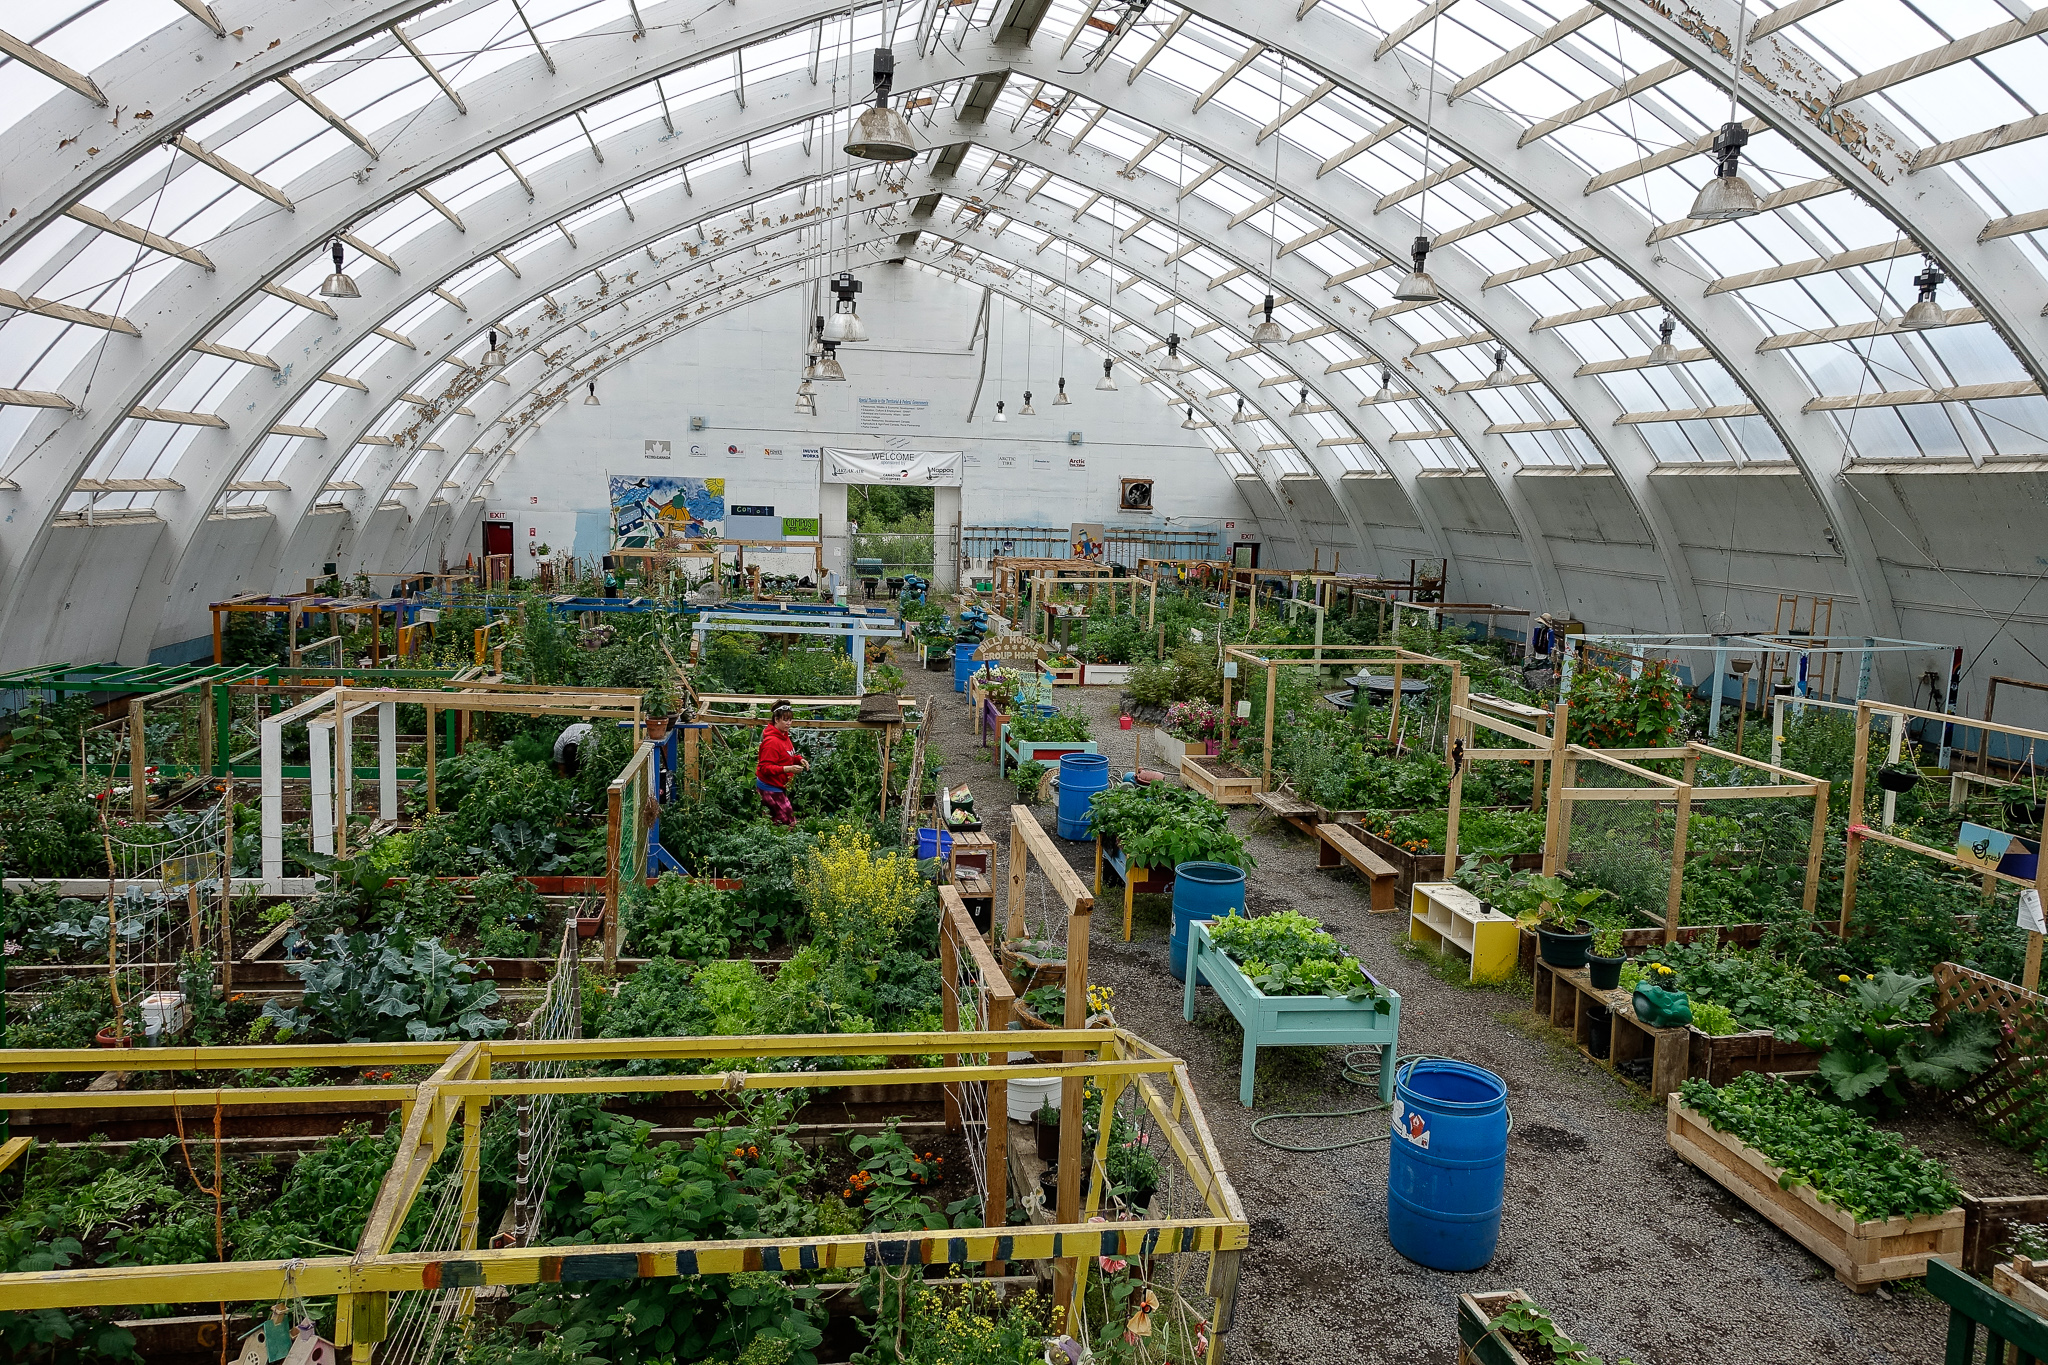 INUVIK COMMUNITY GREENHOUSE. FORMERLY THE SITE OF AN ICE HOCKEY ARENA, THE BUILDING NOW CONTAINS RESIDENTS' ALLOTMENTS.